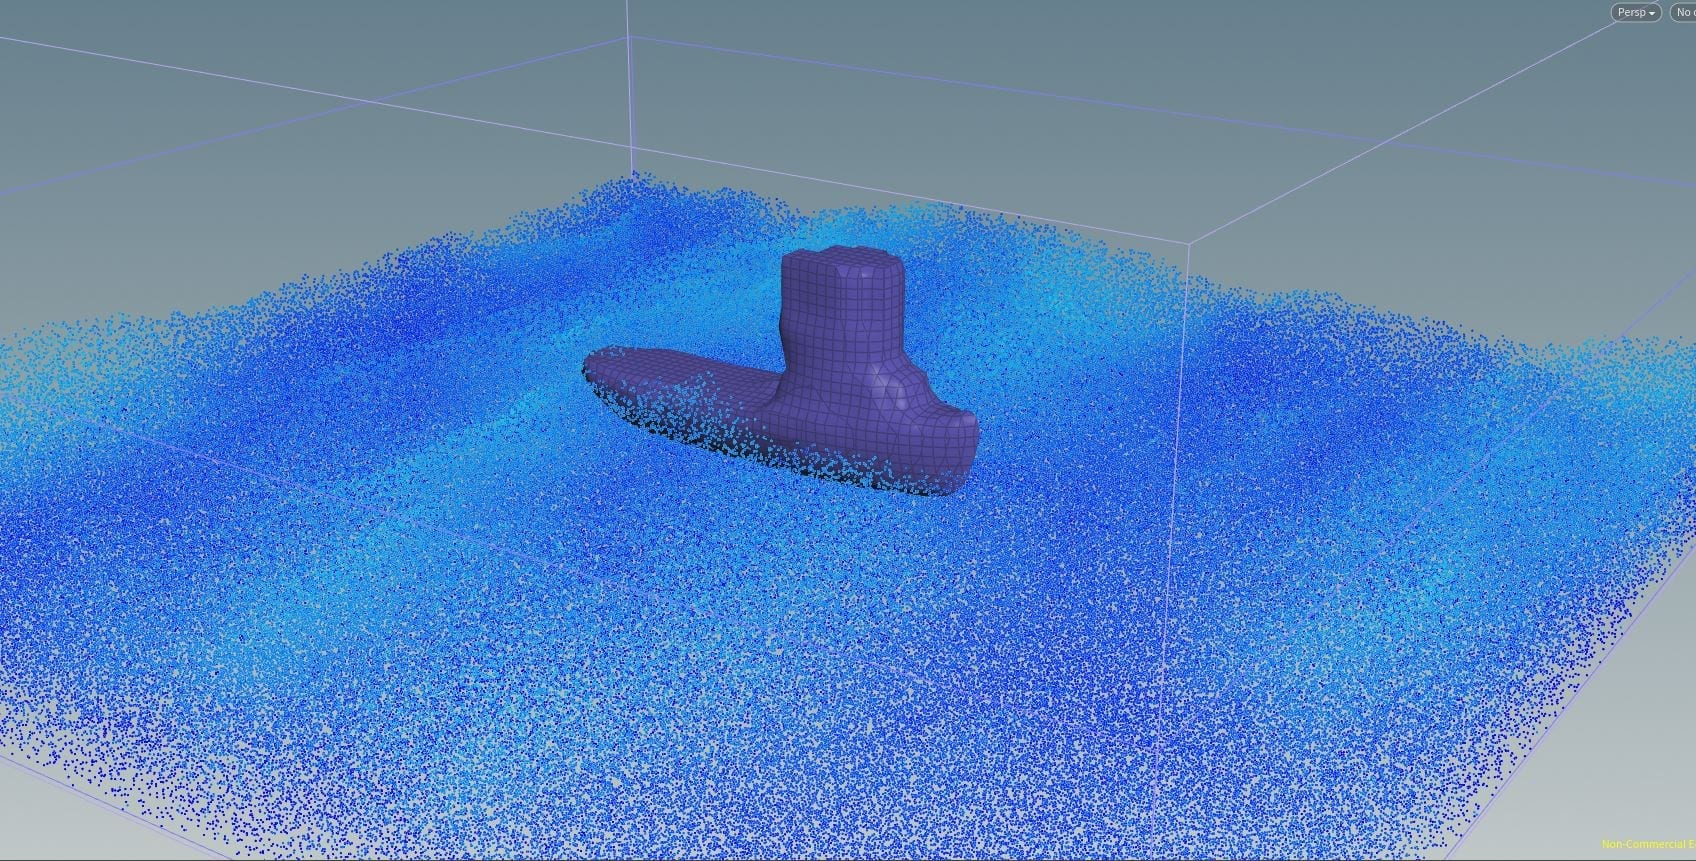 Learning To Create An Ocean – Simulating a Boat on an Ocean